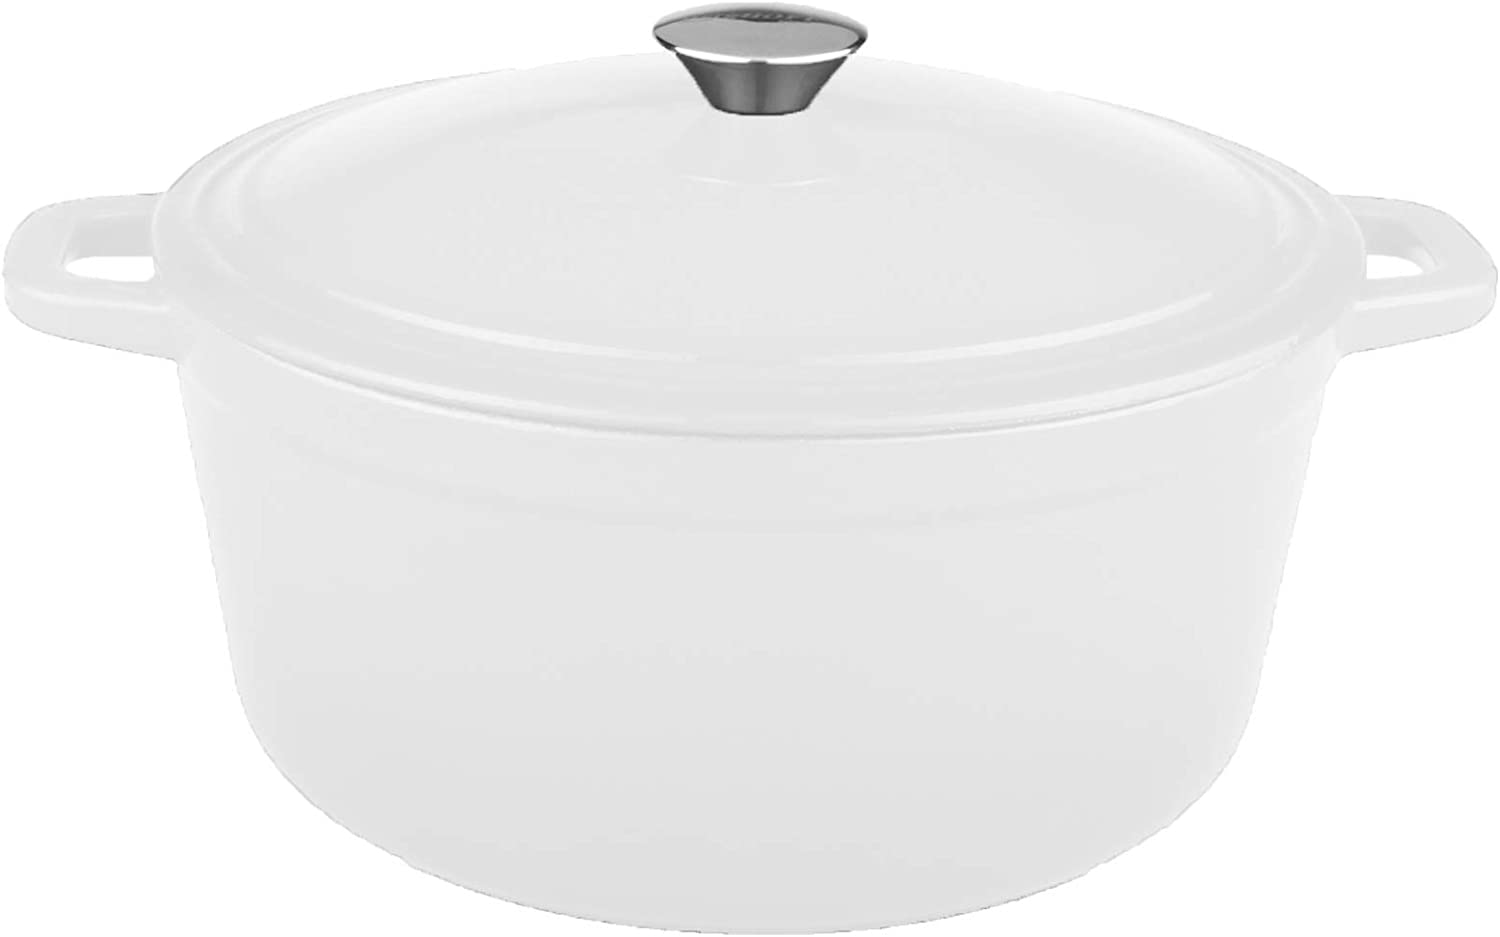 Max 51% OFF BergHOFF Neo 5 Qt. Cast Iron Covered White Dutch Oval Oven Manufacturer regenerated product